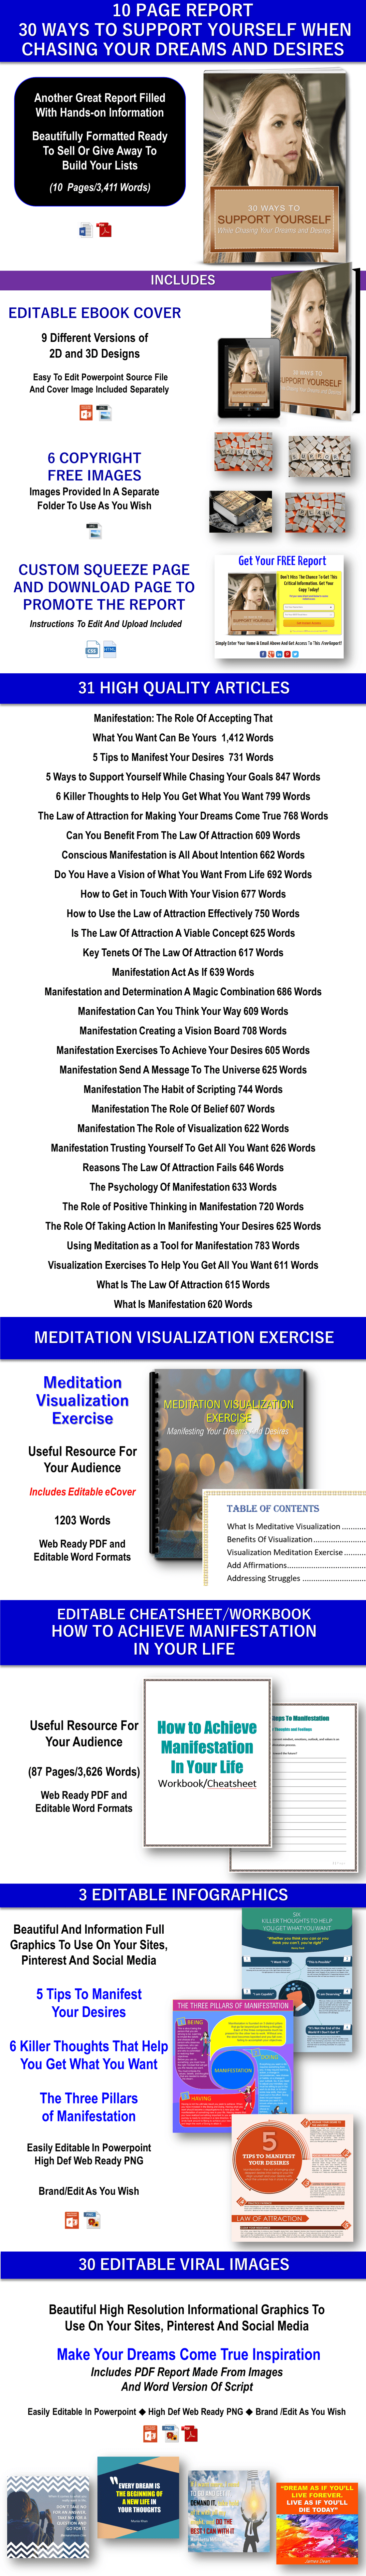 Manifestation and Law Of Attraction Content - PLR Rights